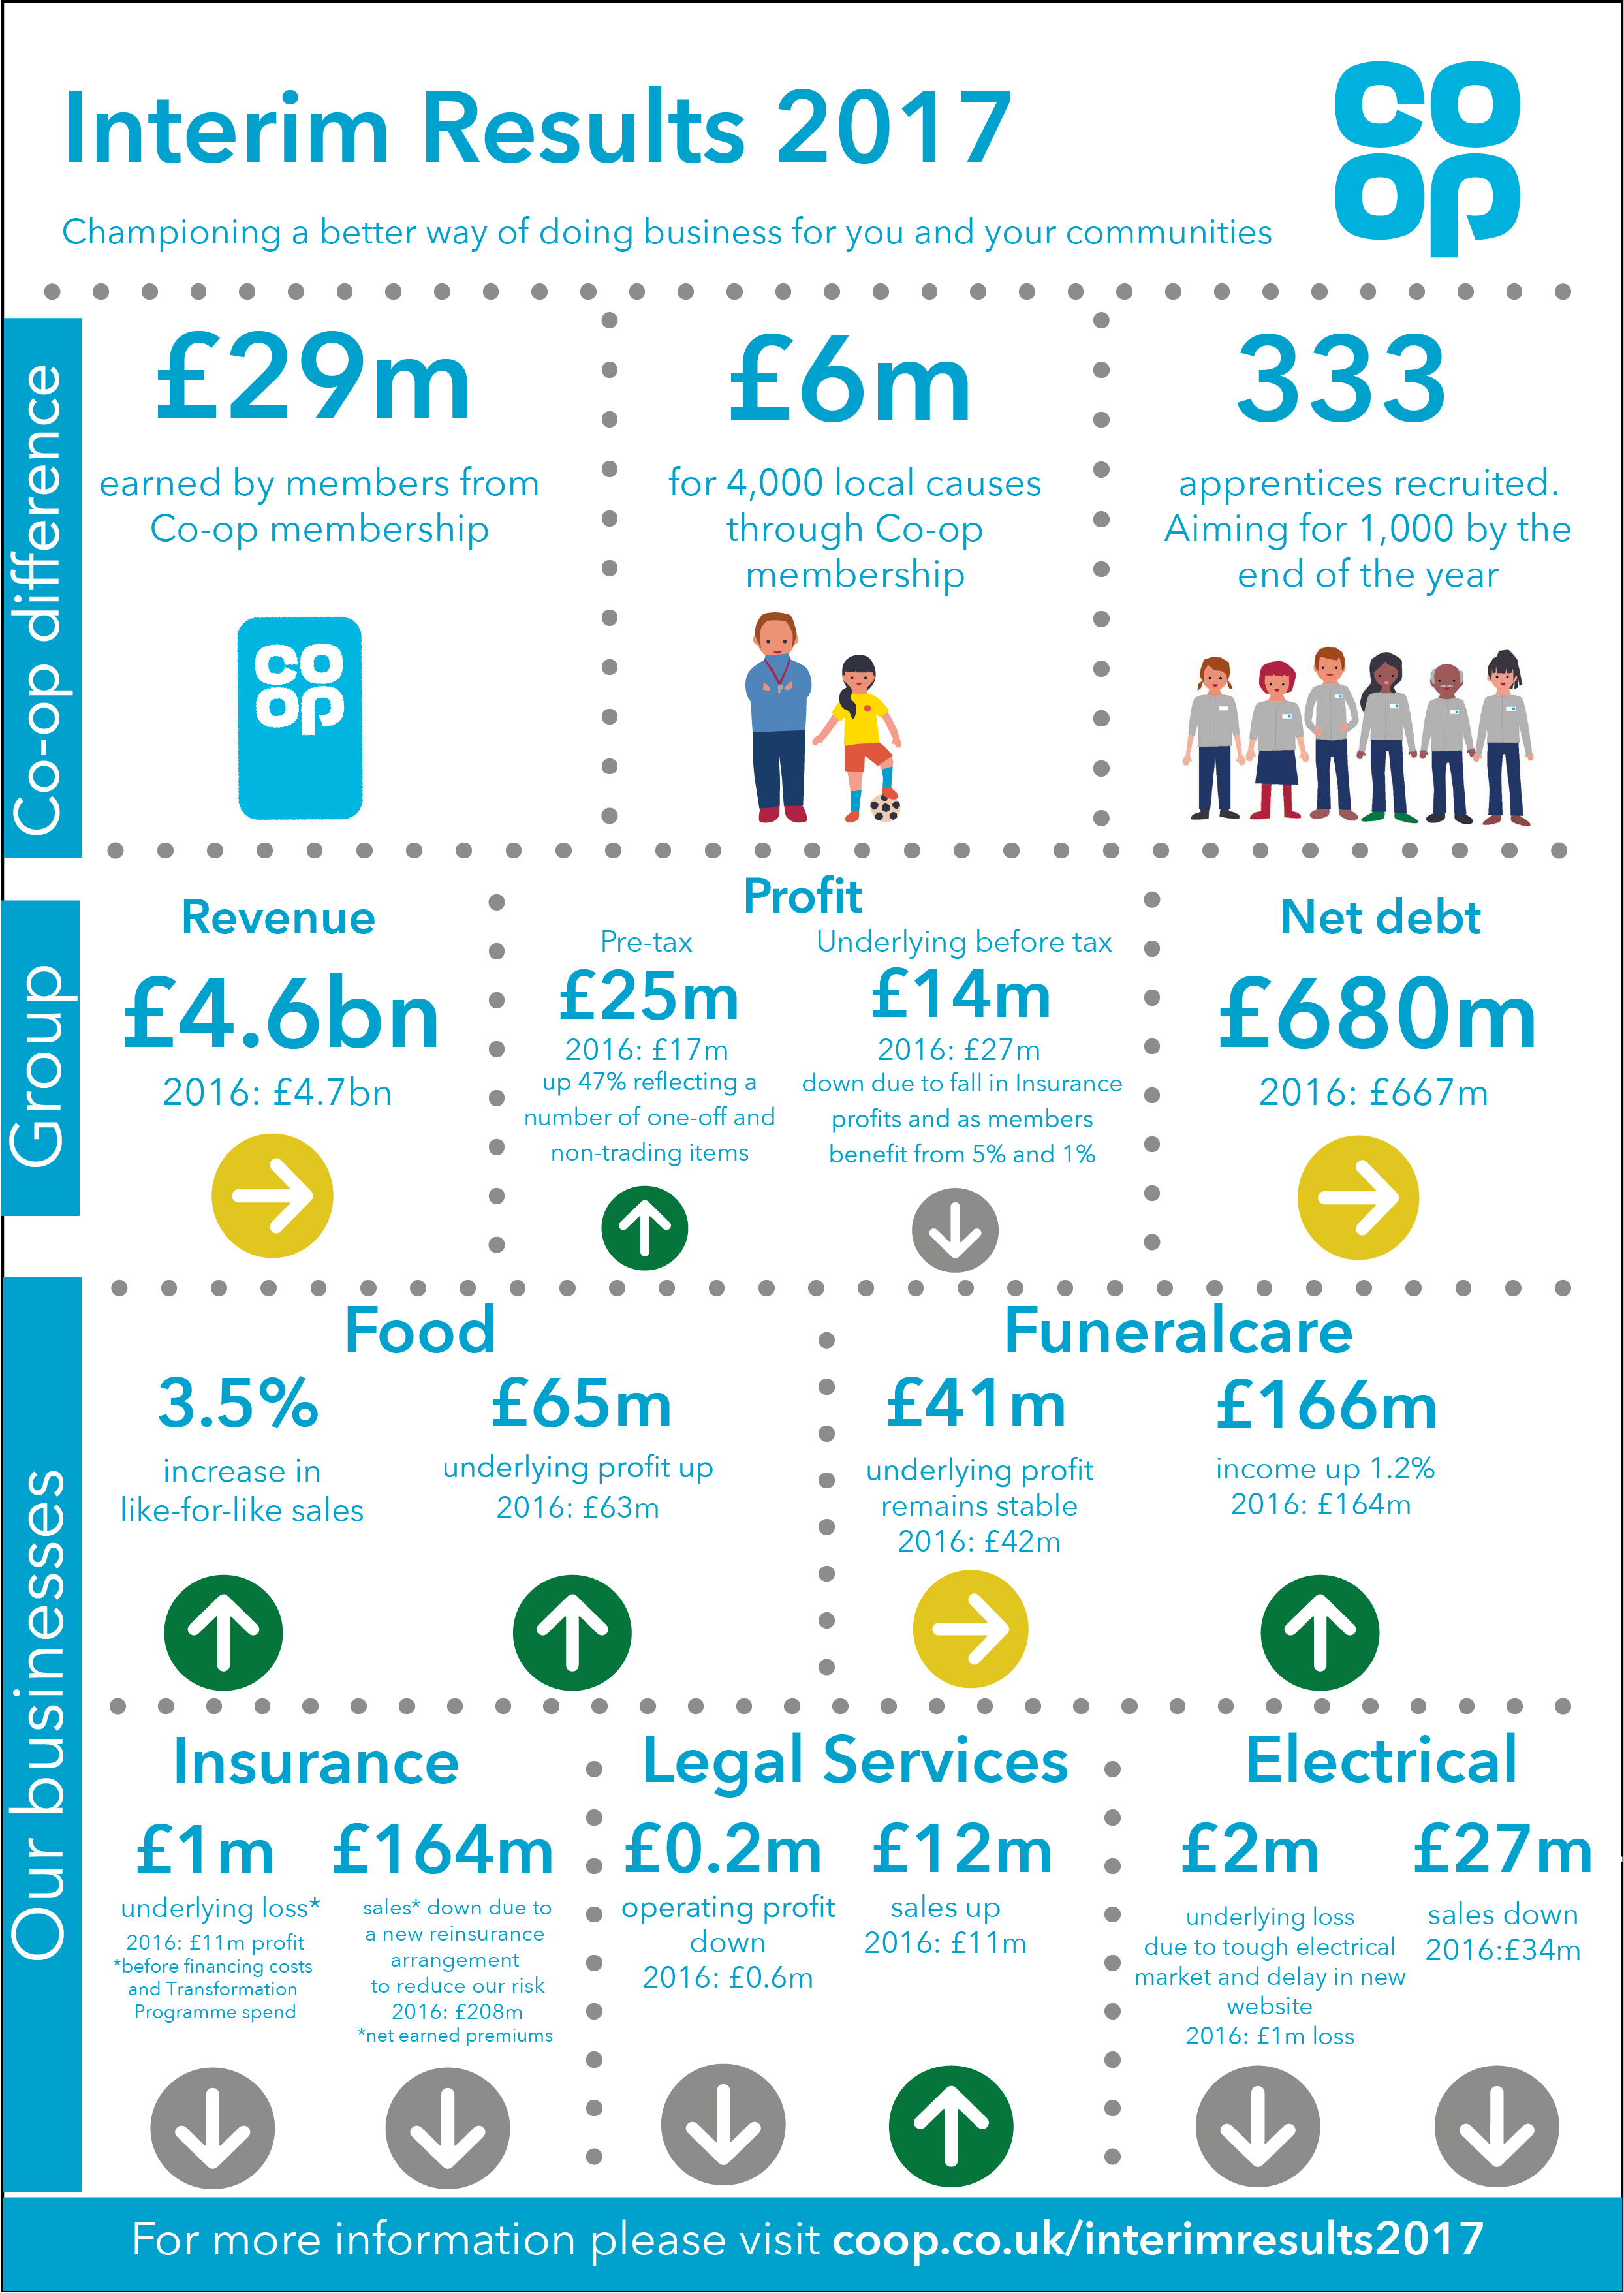 Graphic showing key highlights across the Co-op Group for the 2017 interim results